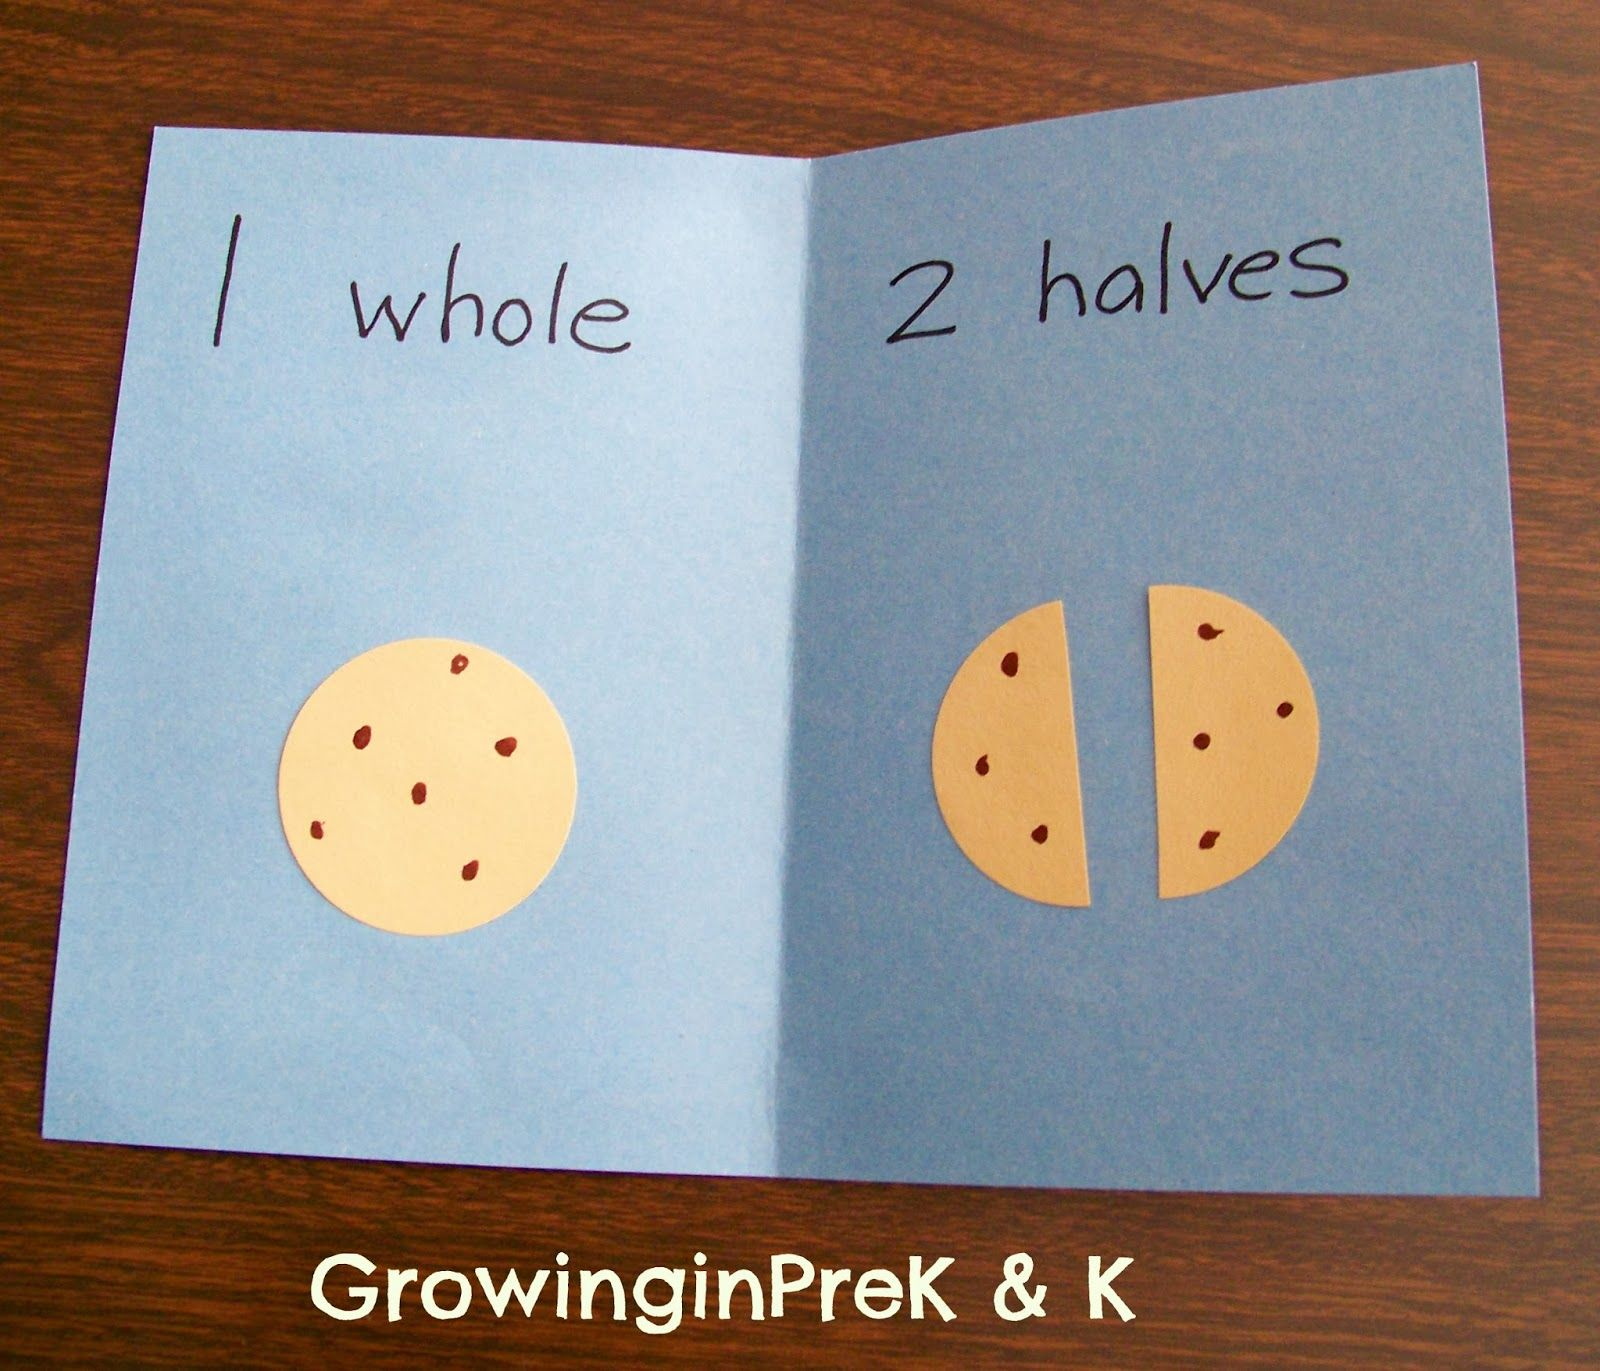 Growinginpre K And K Whole Half And Quarter In